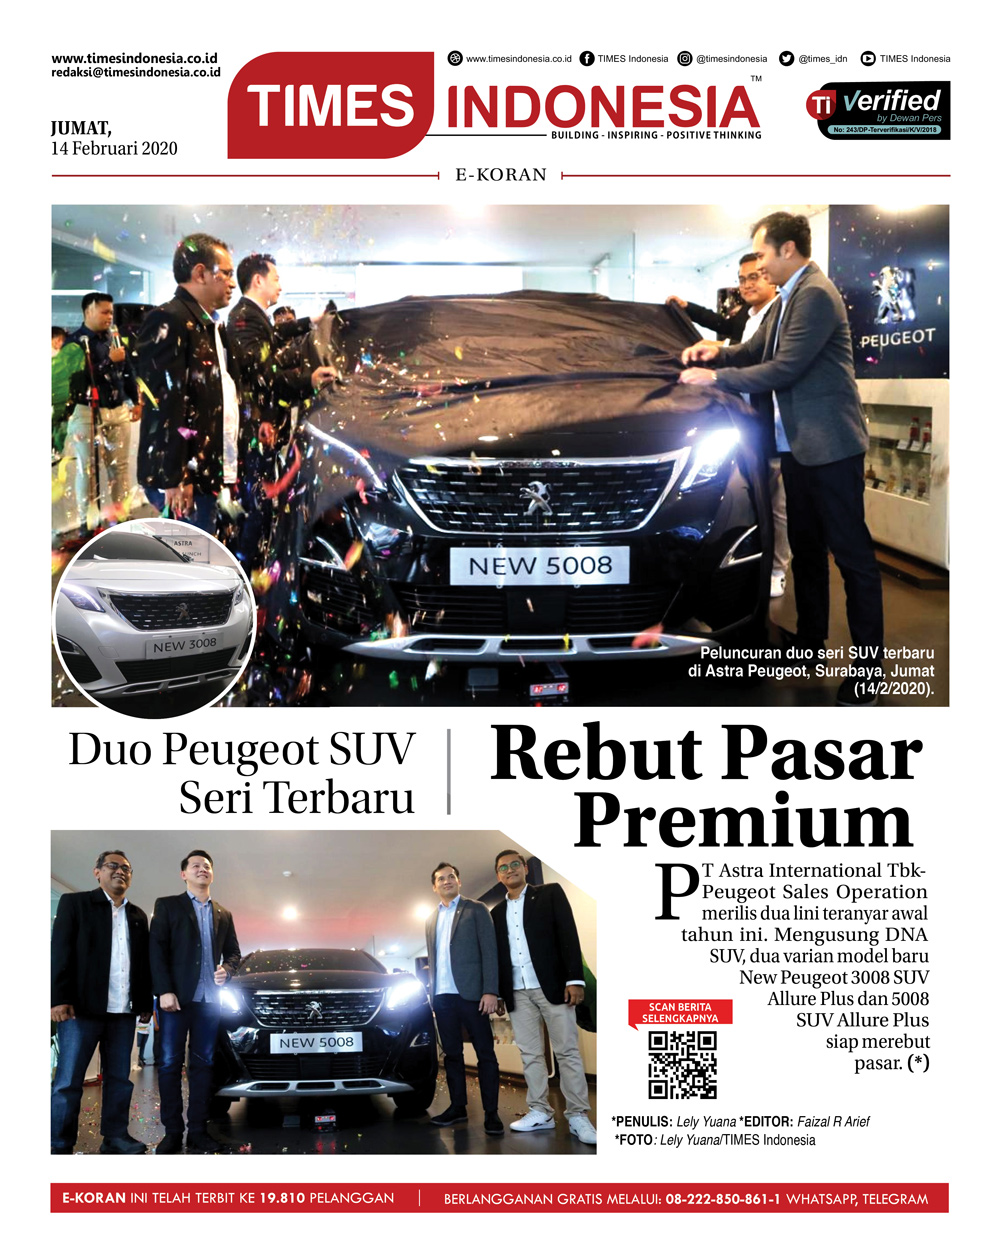 Edisi-Jumat-14-Februari-2020-peugeot.jpg